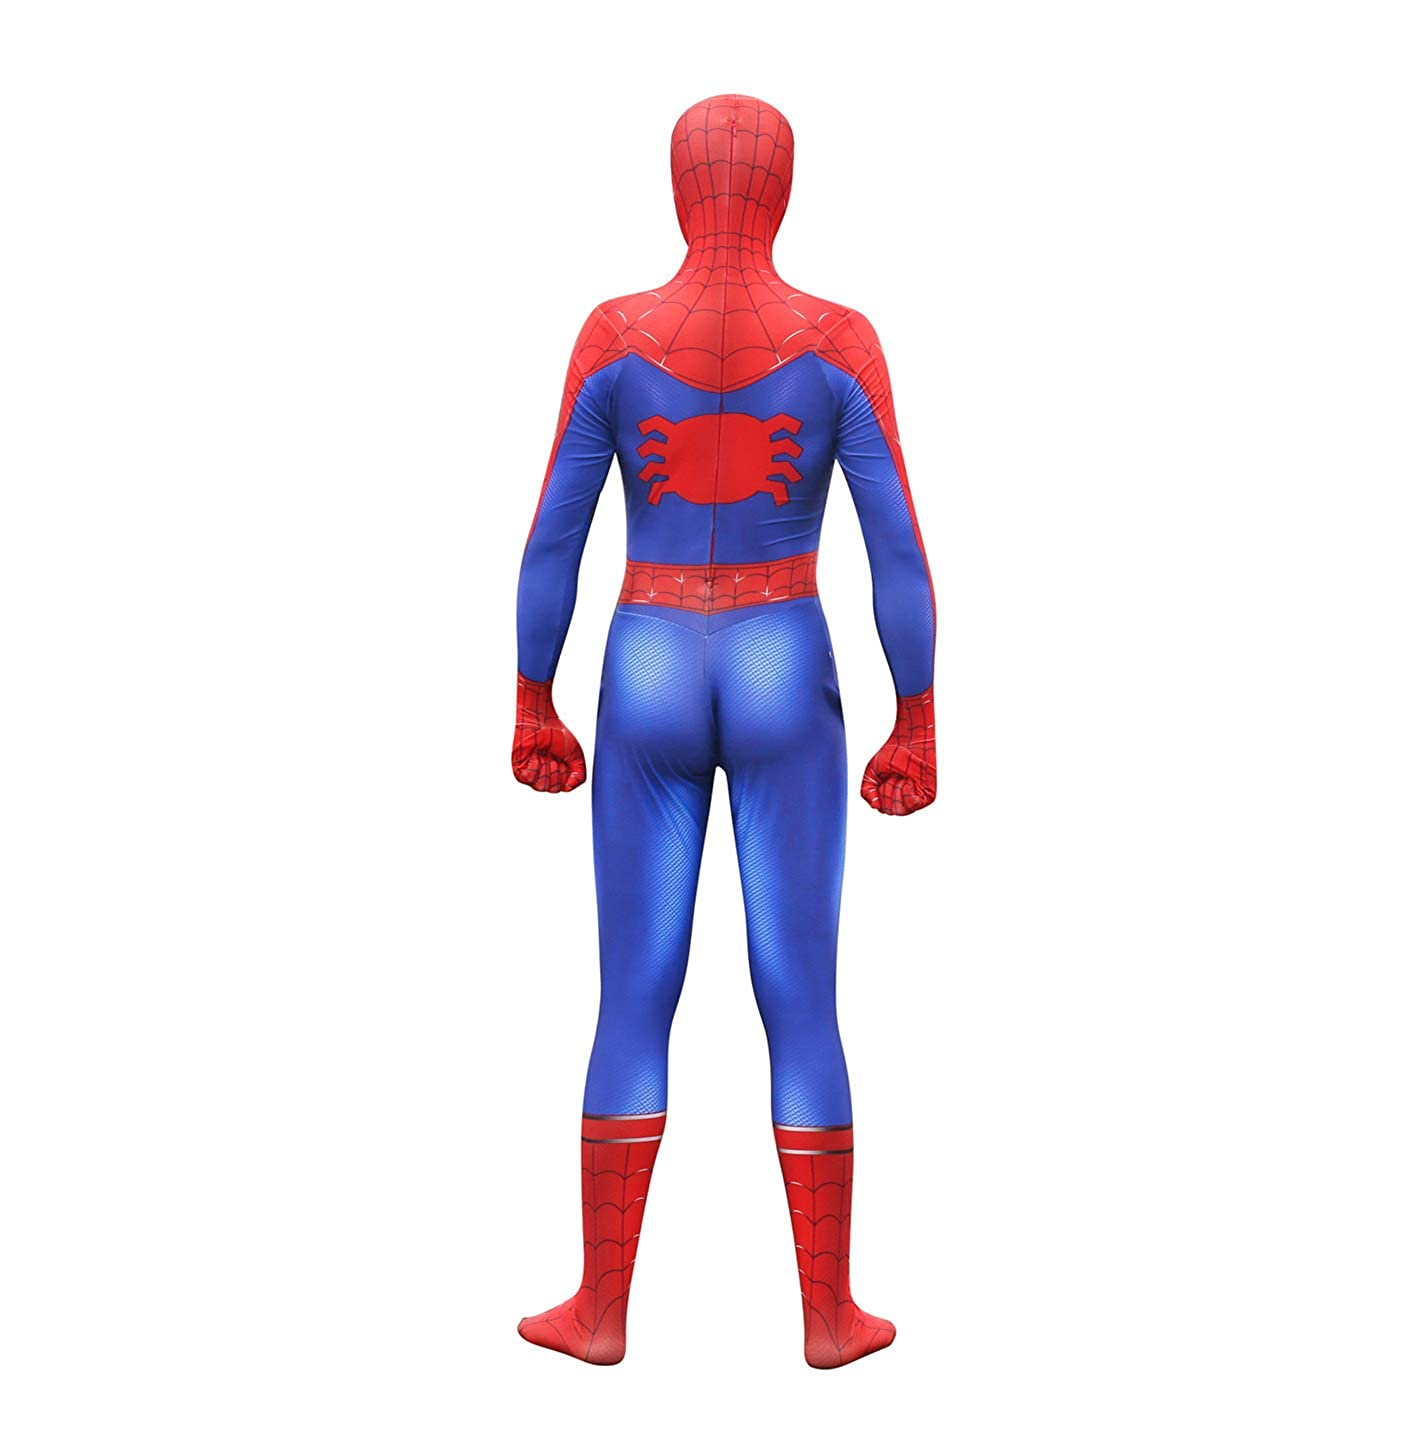 Unisex Lycra Spandex Zentai Halloween Into The Spideverse Cosplay Costumes Suit Adult//Kids 3D Style